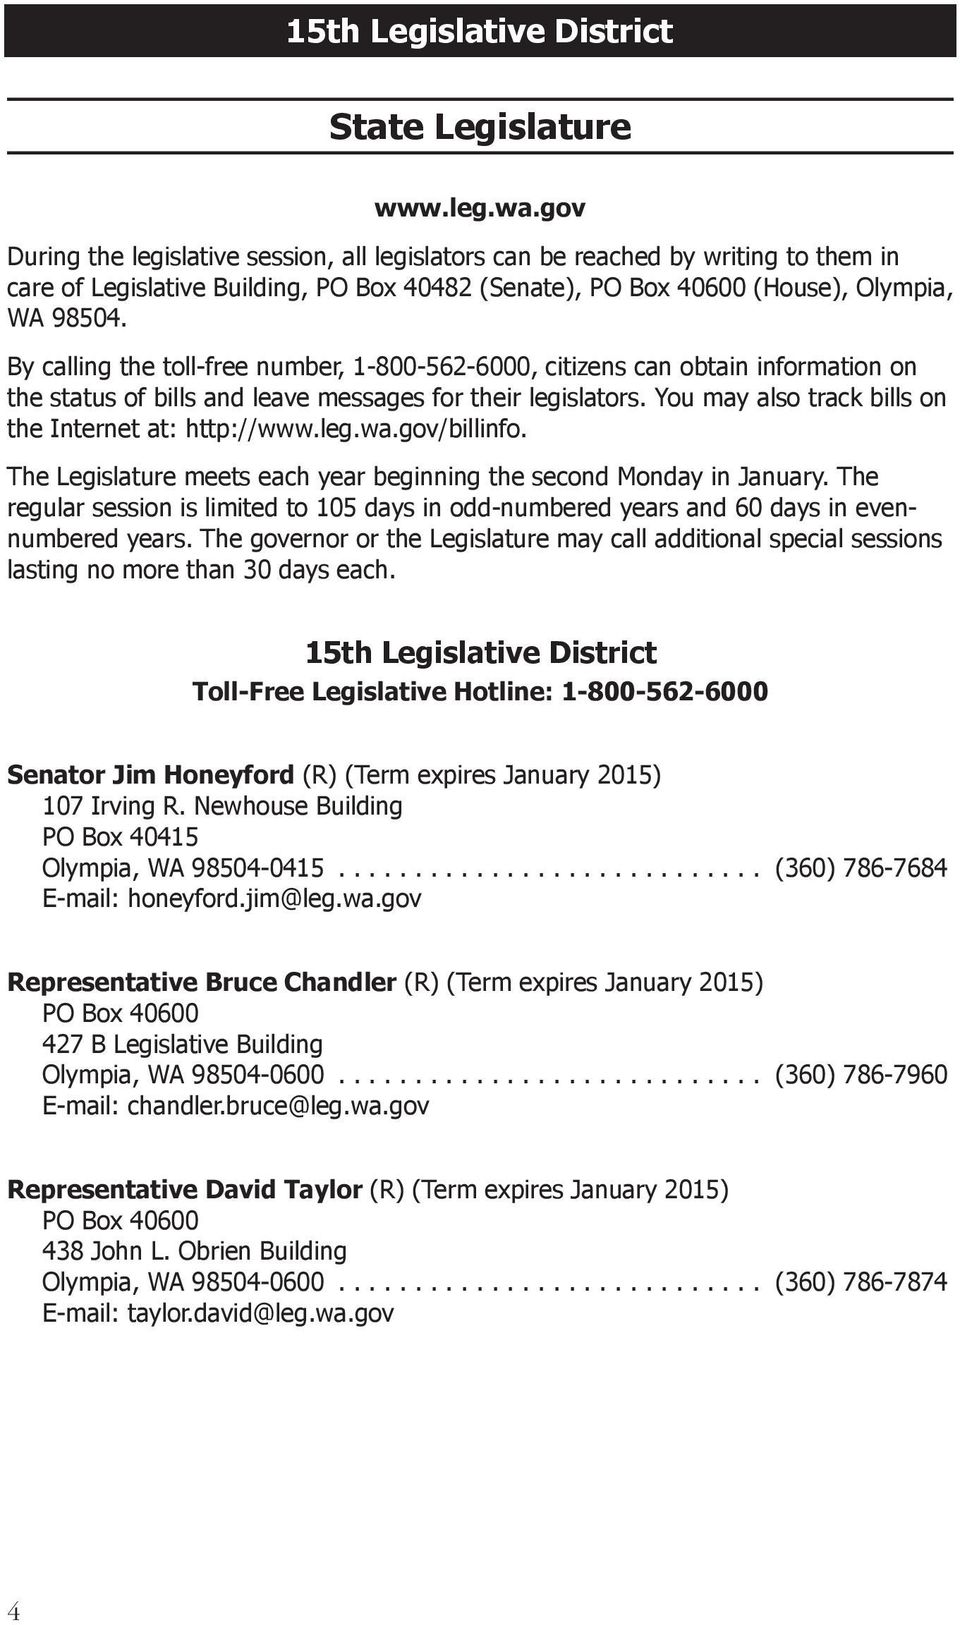 By calling the toll-free number, 1-800-562-6000, citizens can obtain information on the status of bills and leave messages for their legislators.